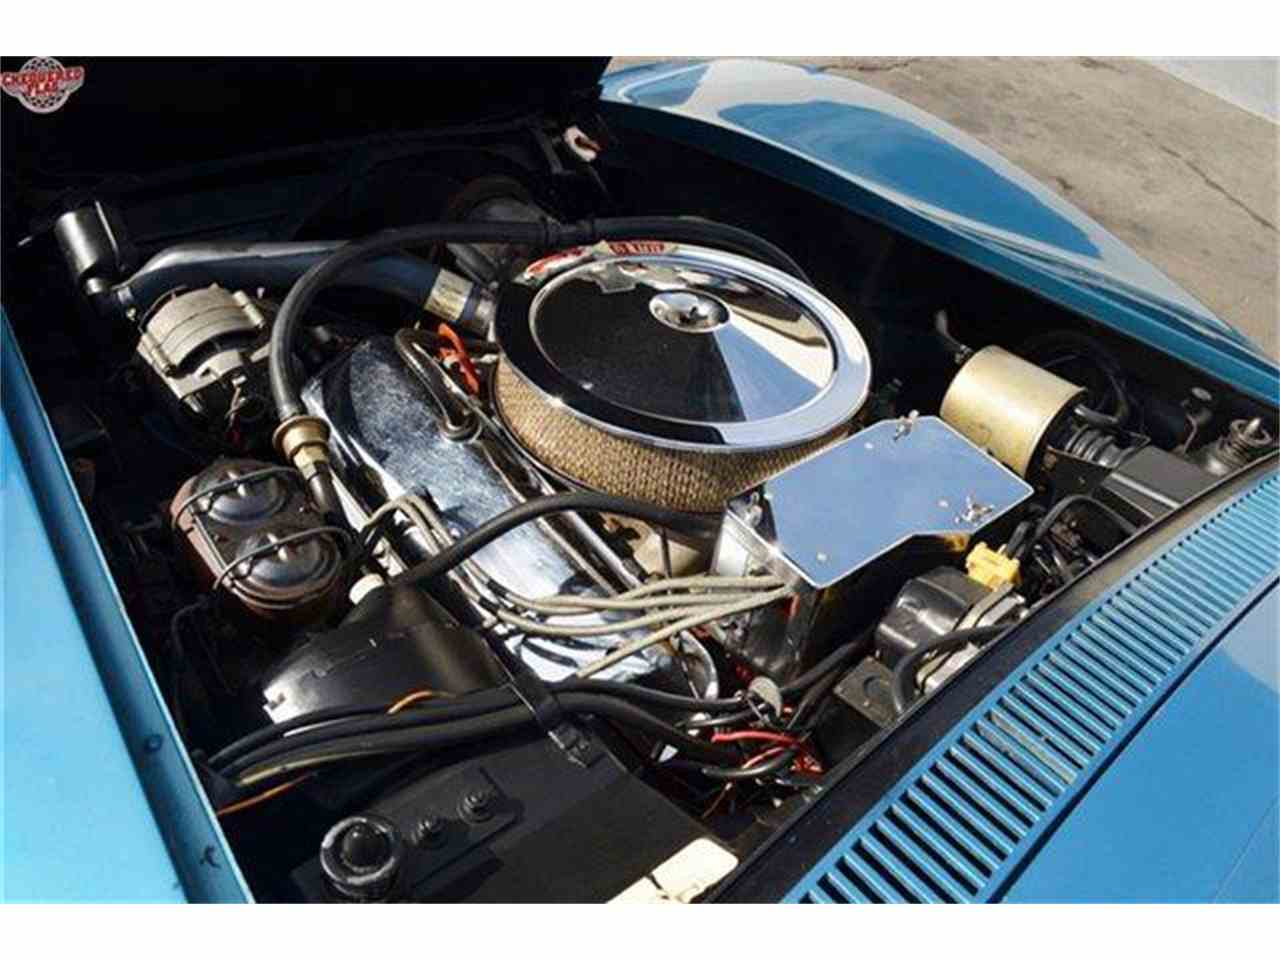 Large Picture of '68 Chevrolet Corvette located in California - $39,500.00 Offered by Chequered Flag International - E99M